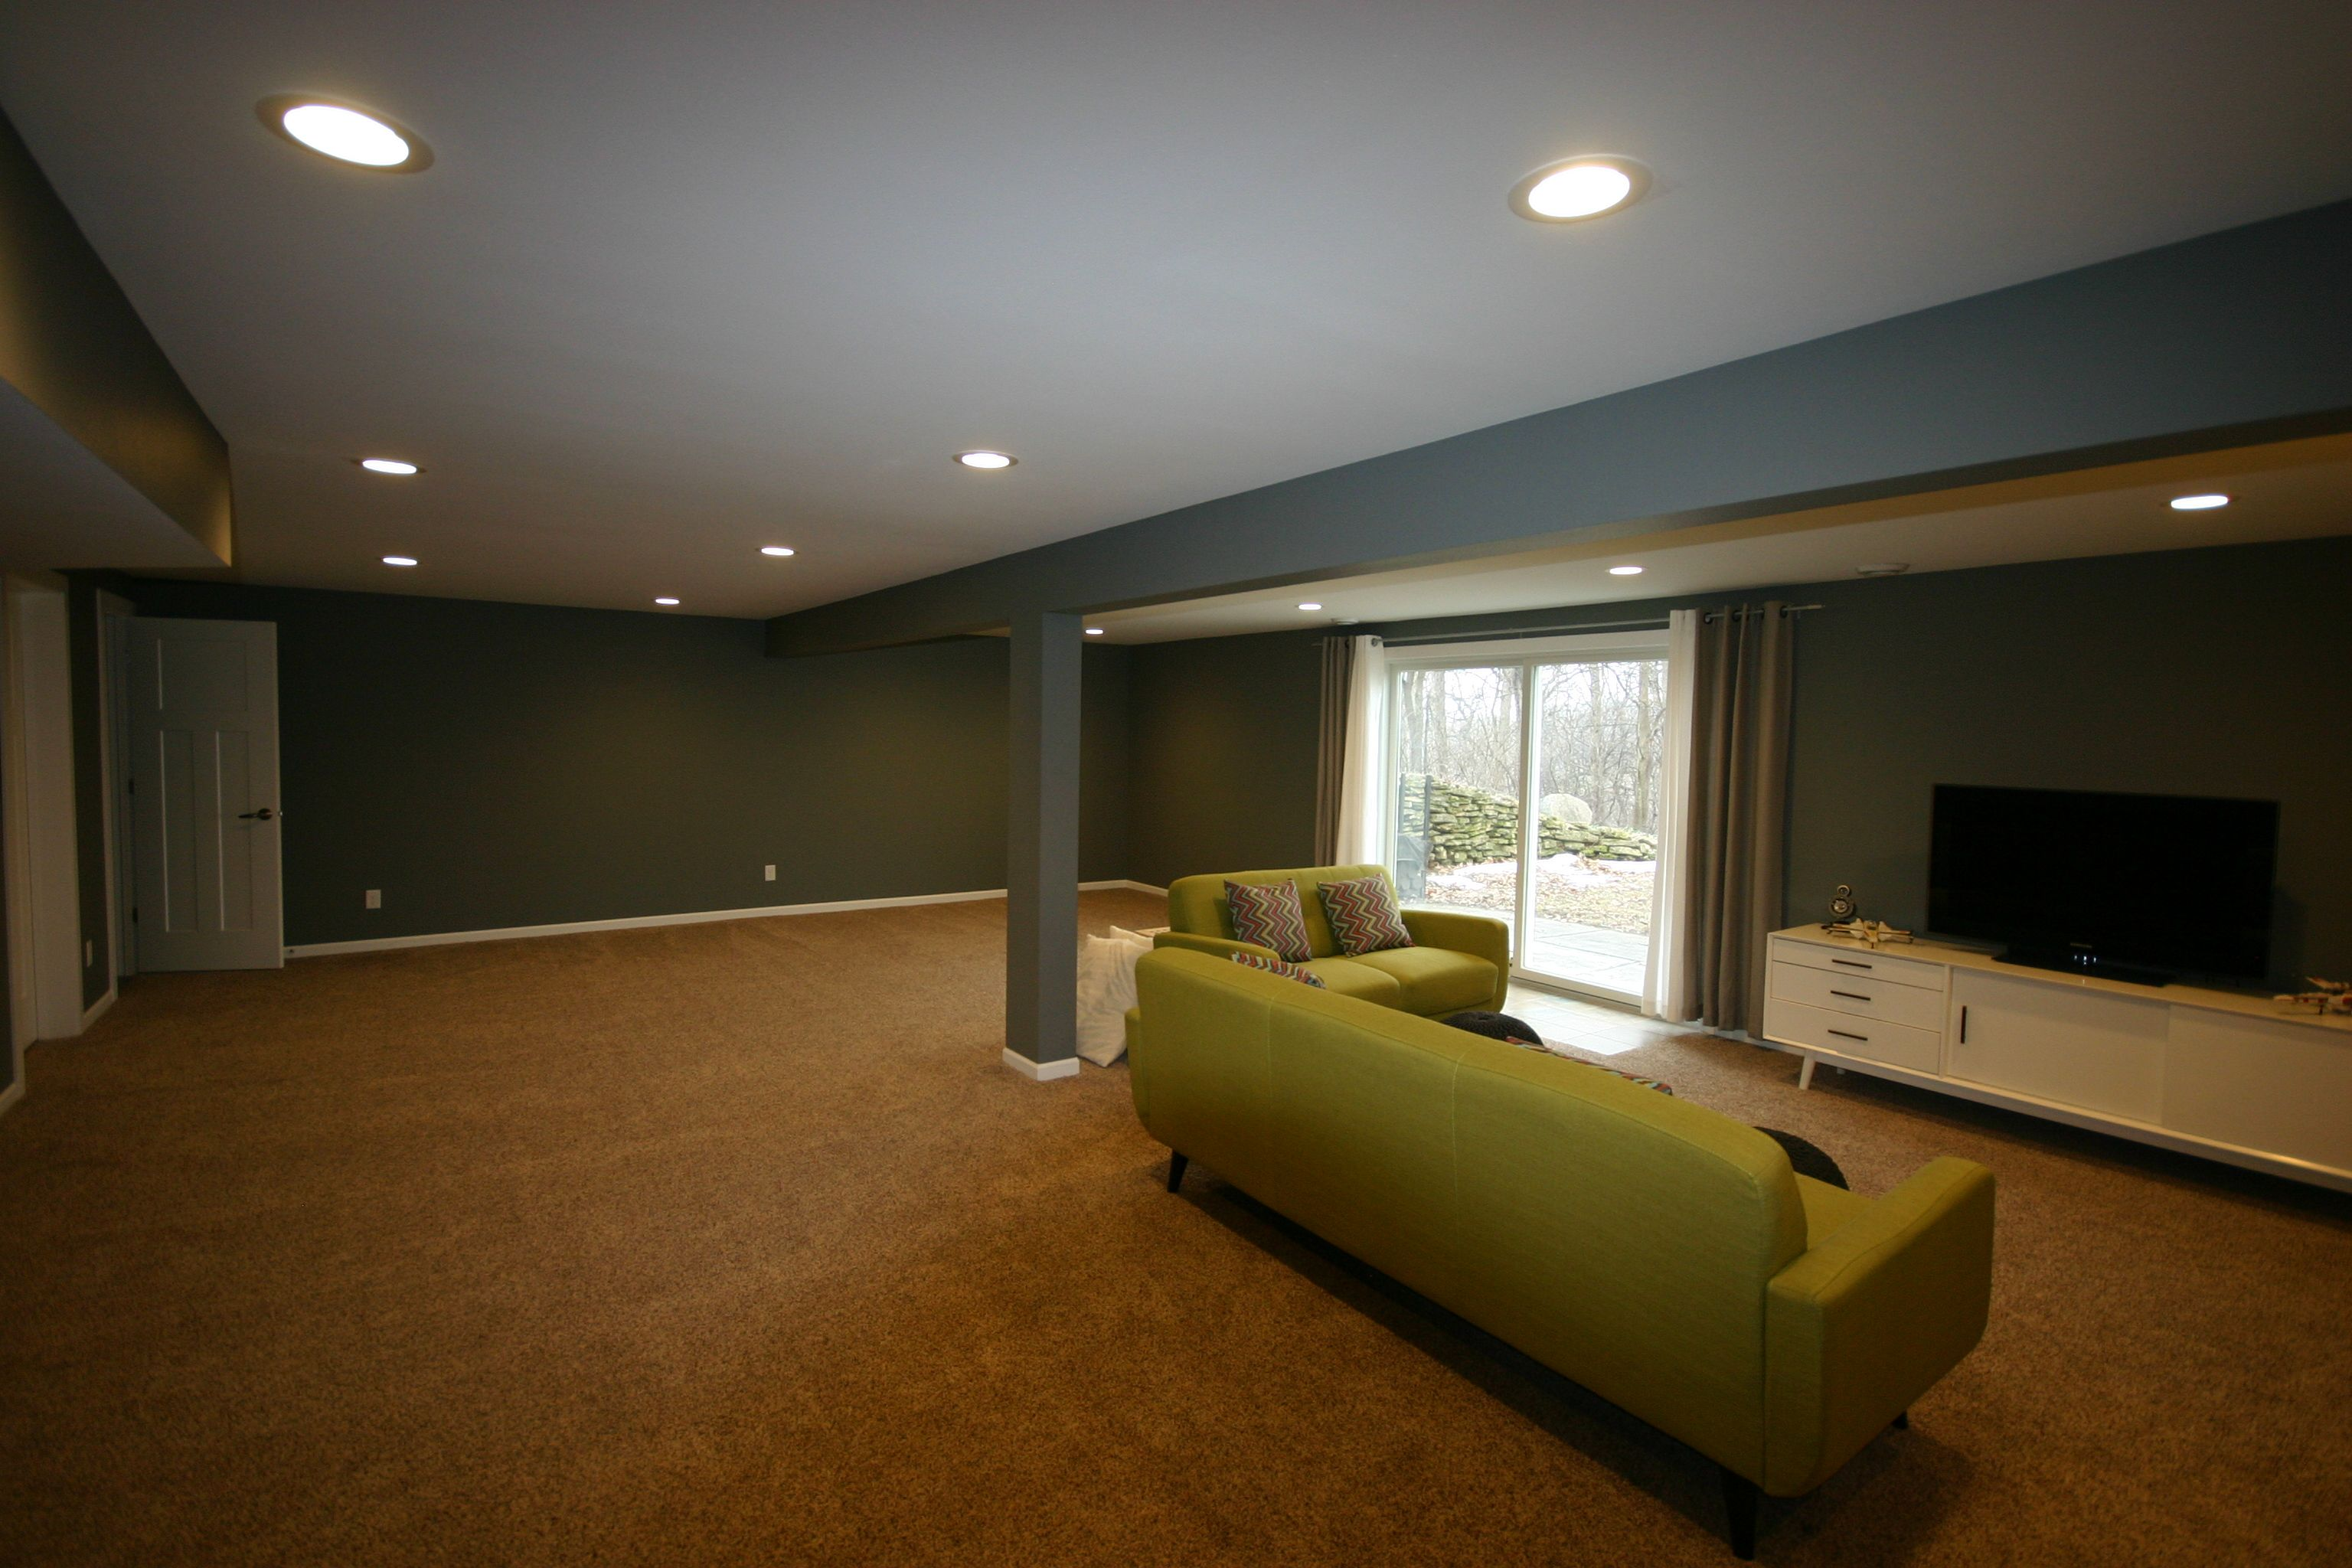 Simple Basement, Carpeting, Drywall Ceiling, Recessed Lighting,White Trim, Basement Kids